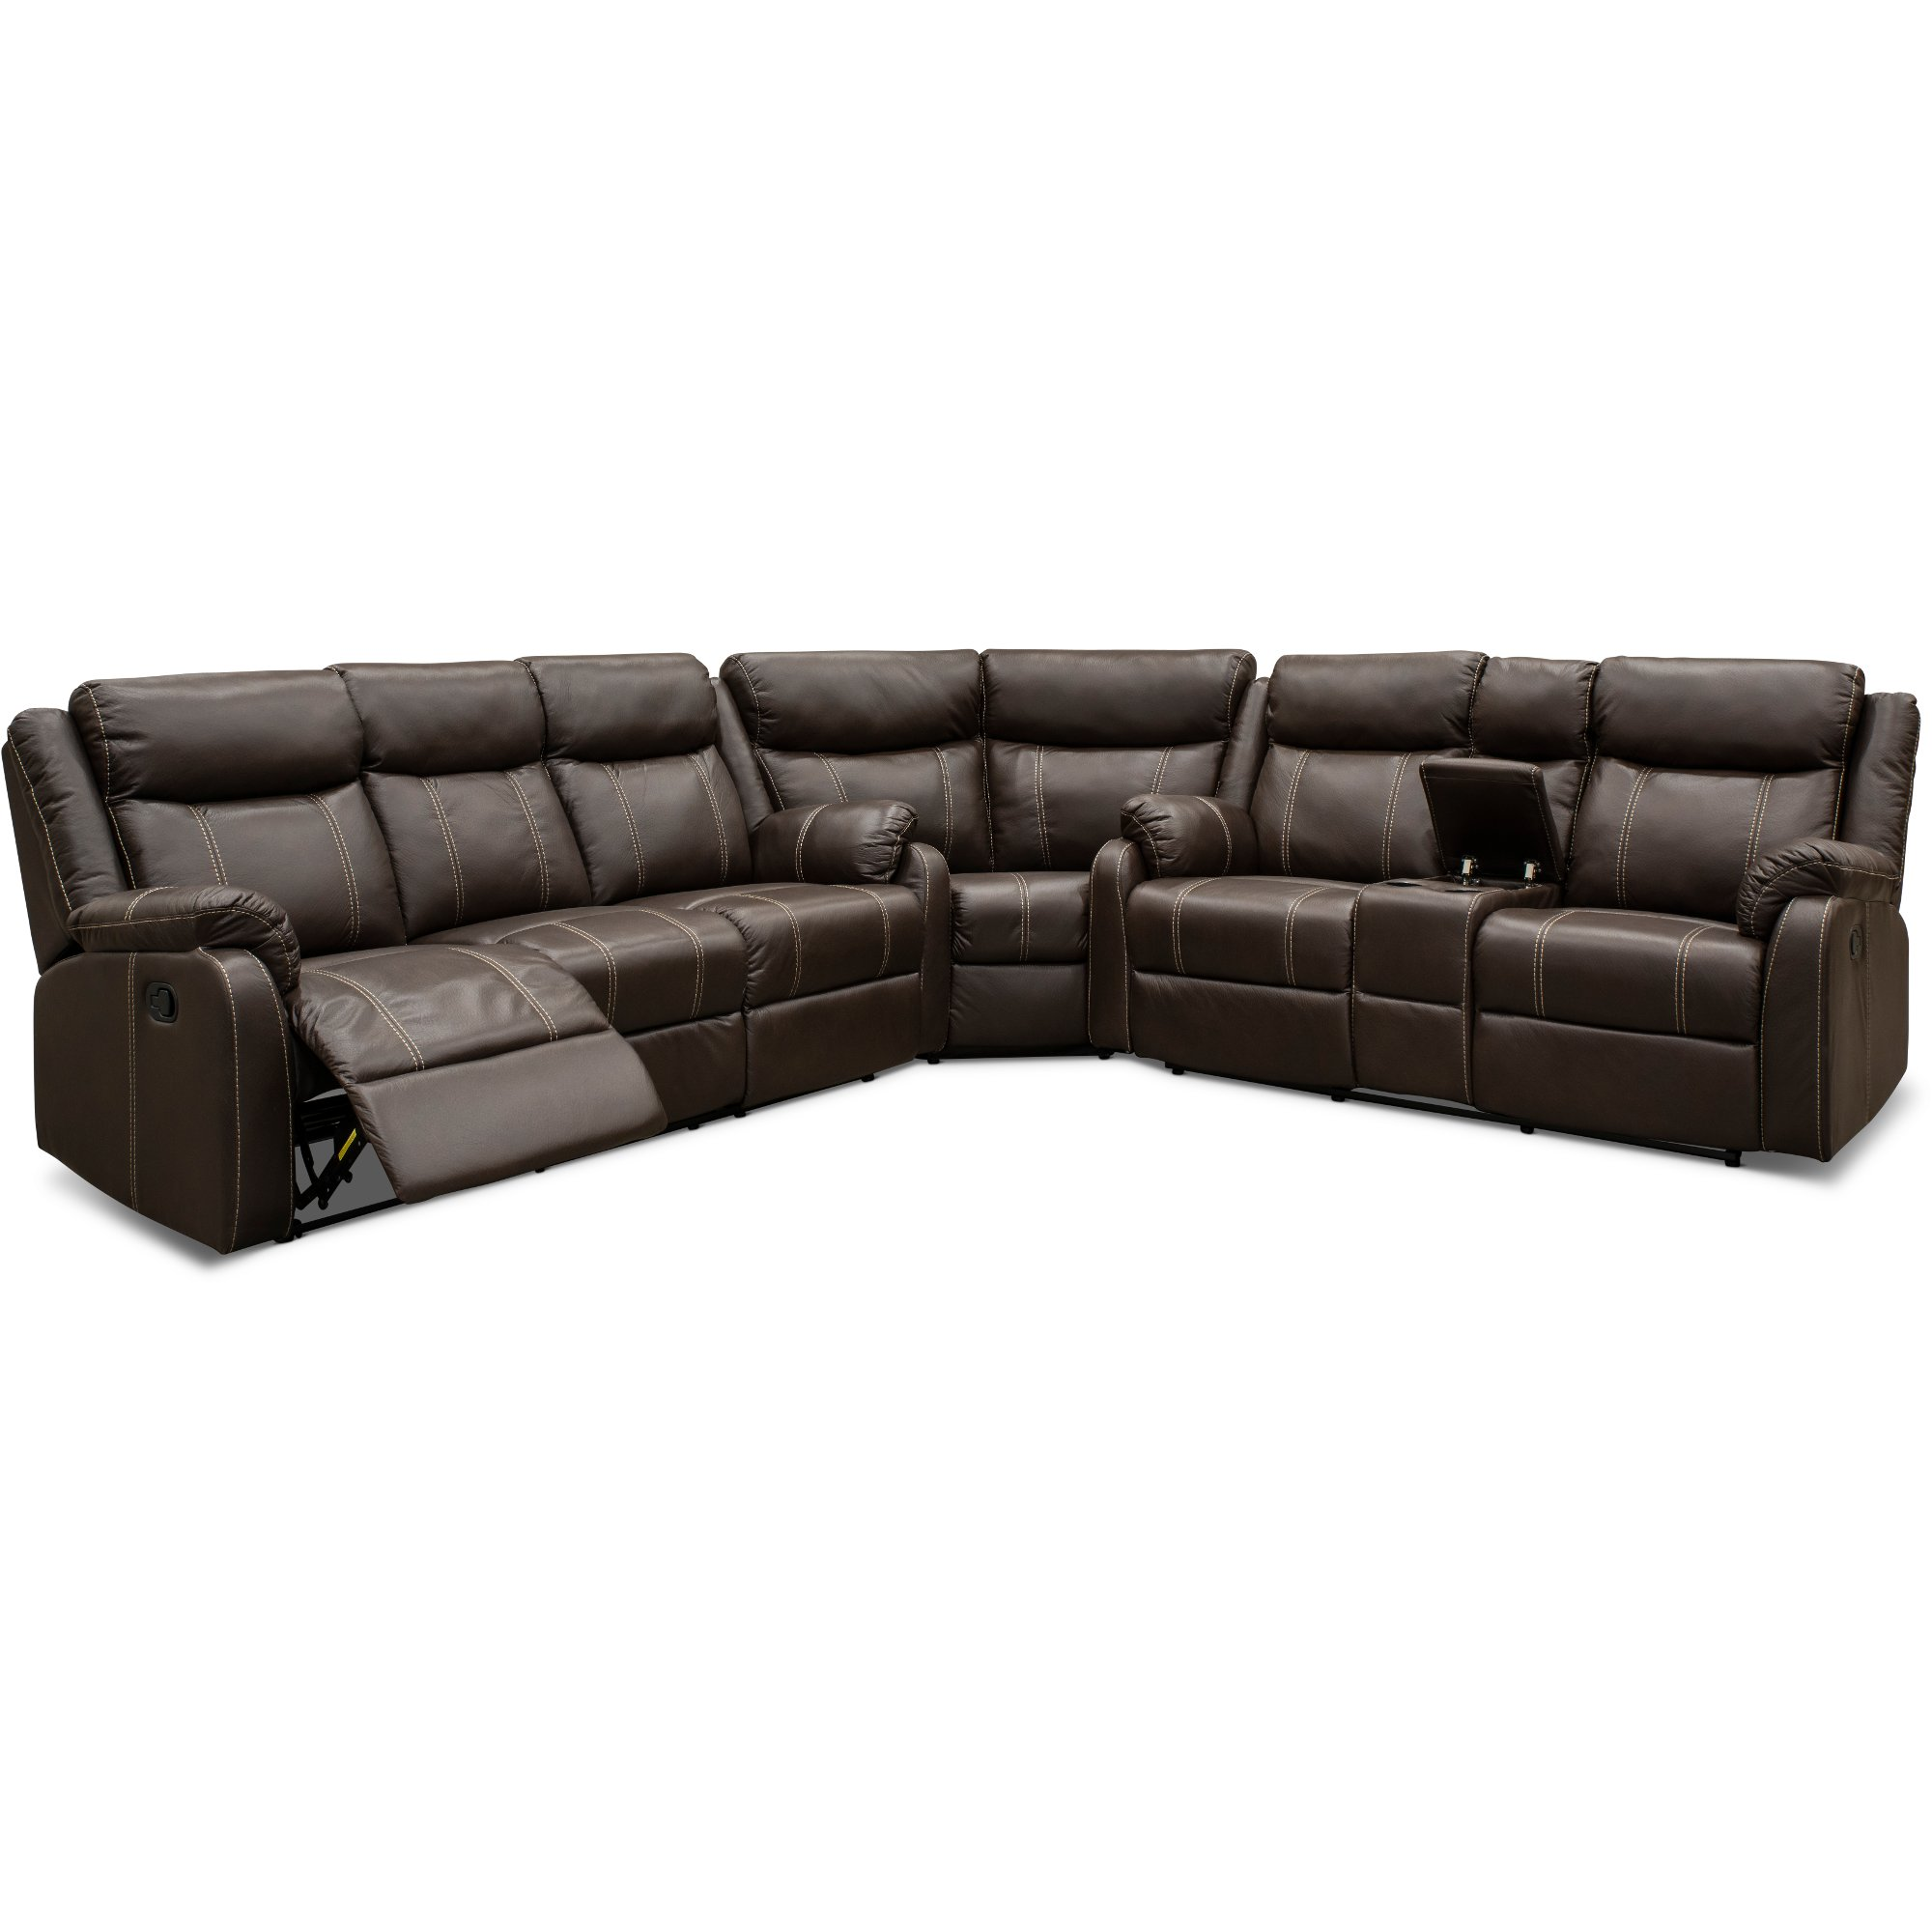 Fine Valor Chocolate Brown Dual Reclining Sectional Sofa Domino Dailytribune Chair Design For Home Dailytribuneorg